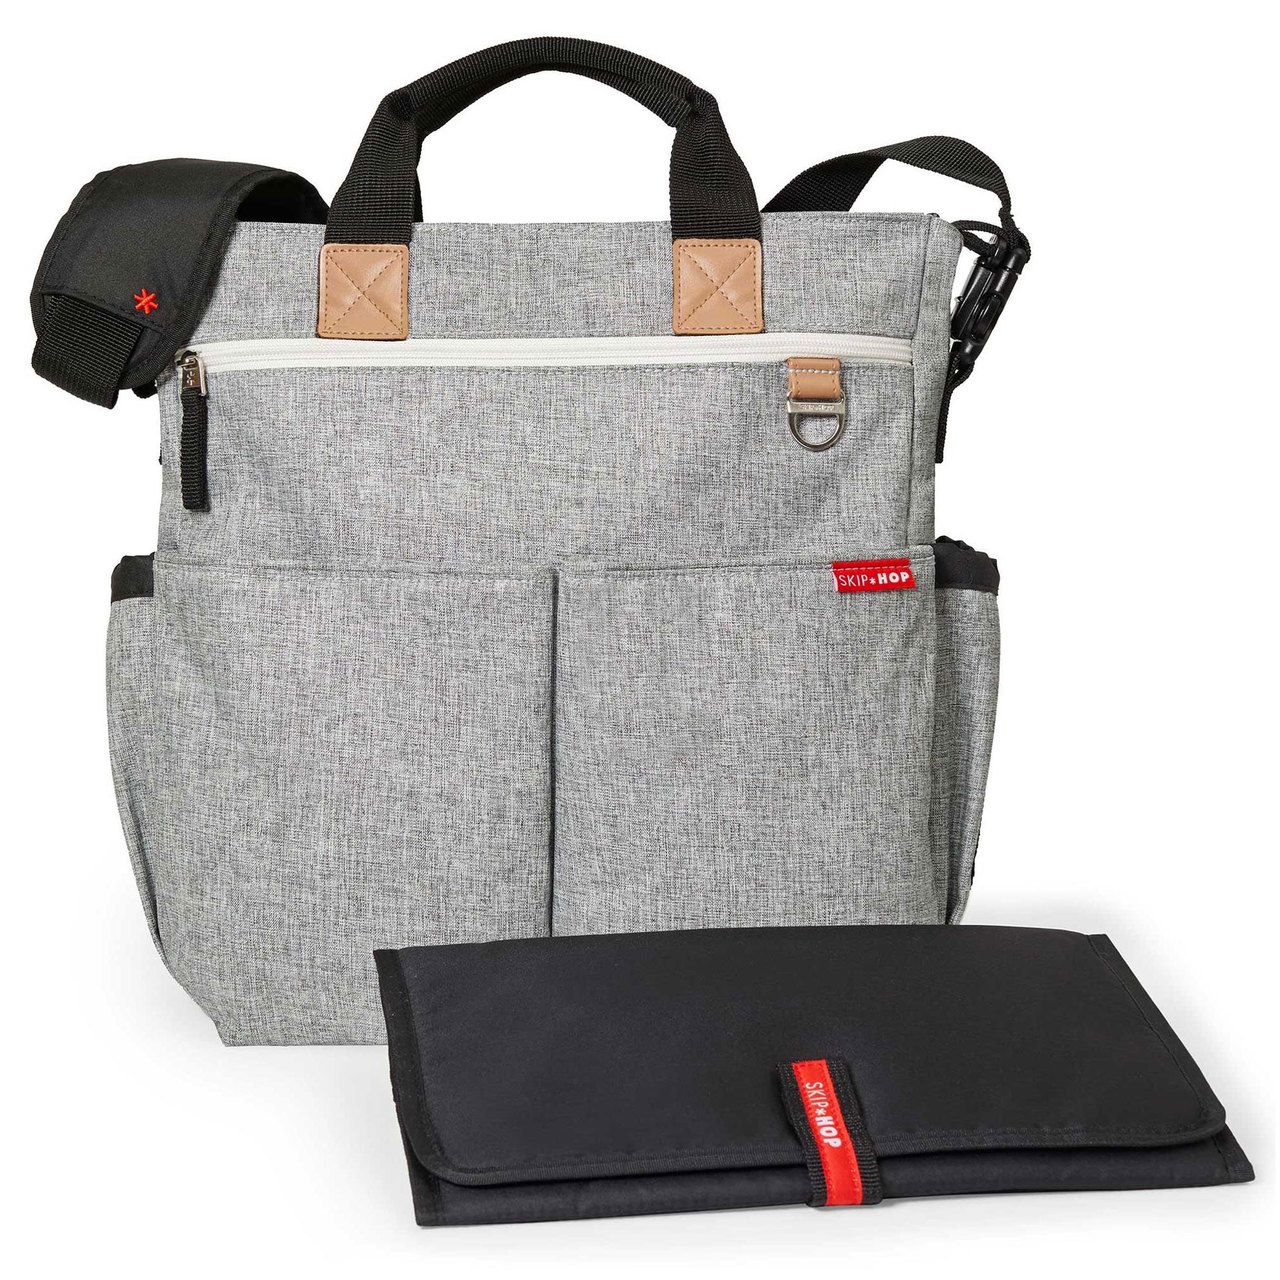 231c8196925aa Skip Hop Grey Melange Duo Signature Diaper Bag - Shop Online